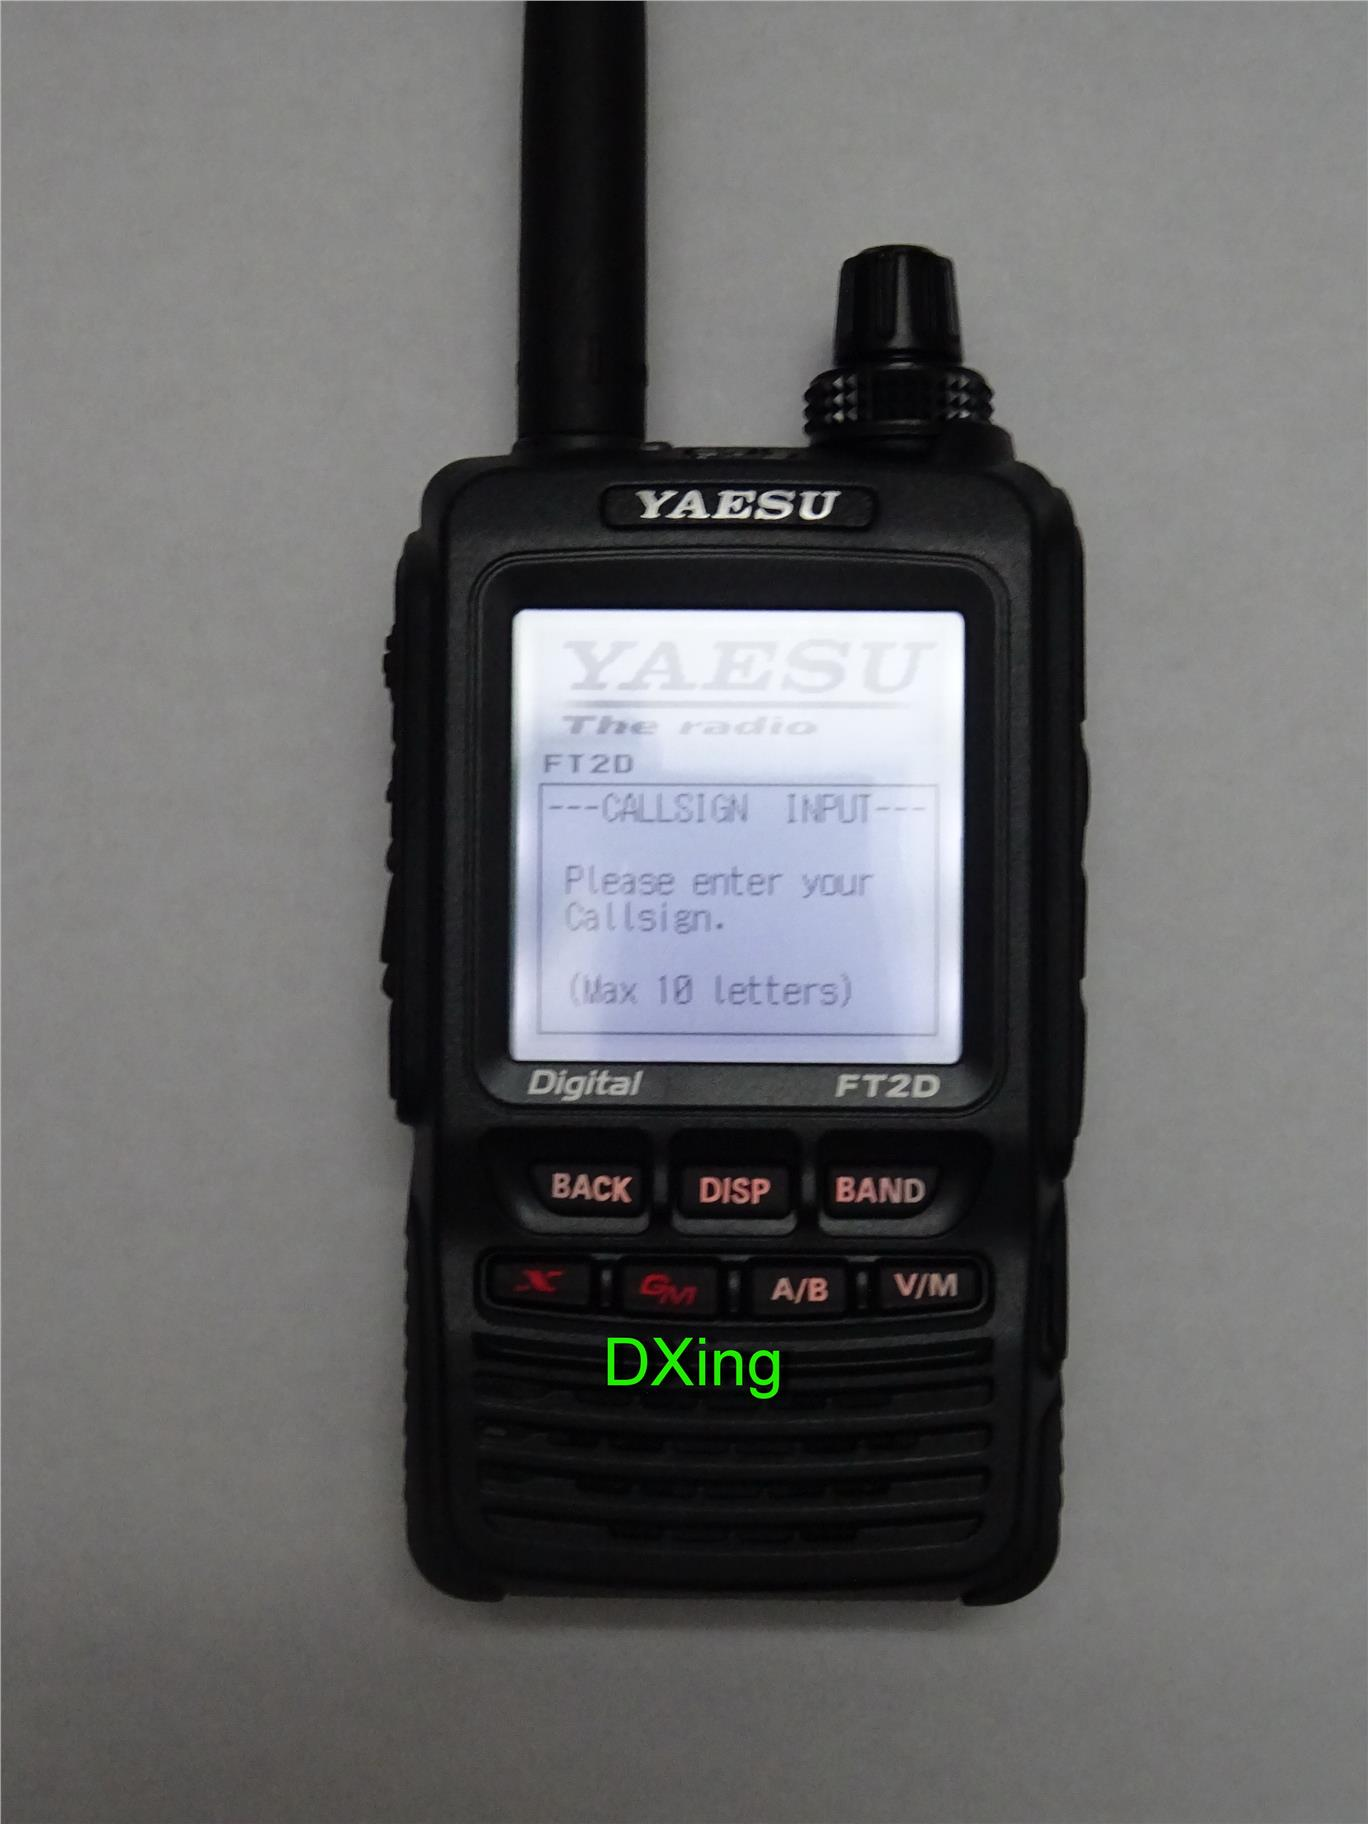 Yaesu FT-2DR 144/430 MHz Dual Band Digital Handheld Transceiver